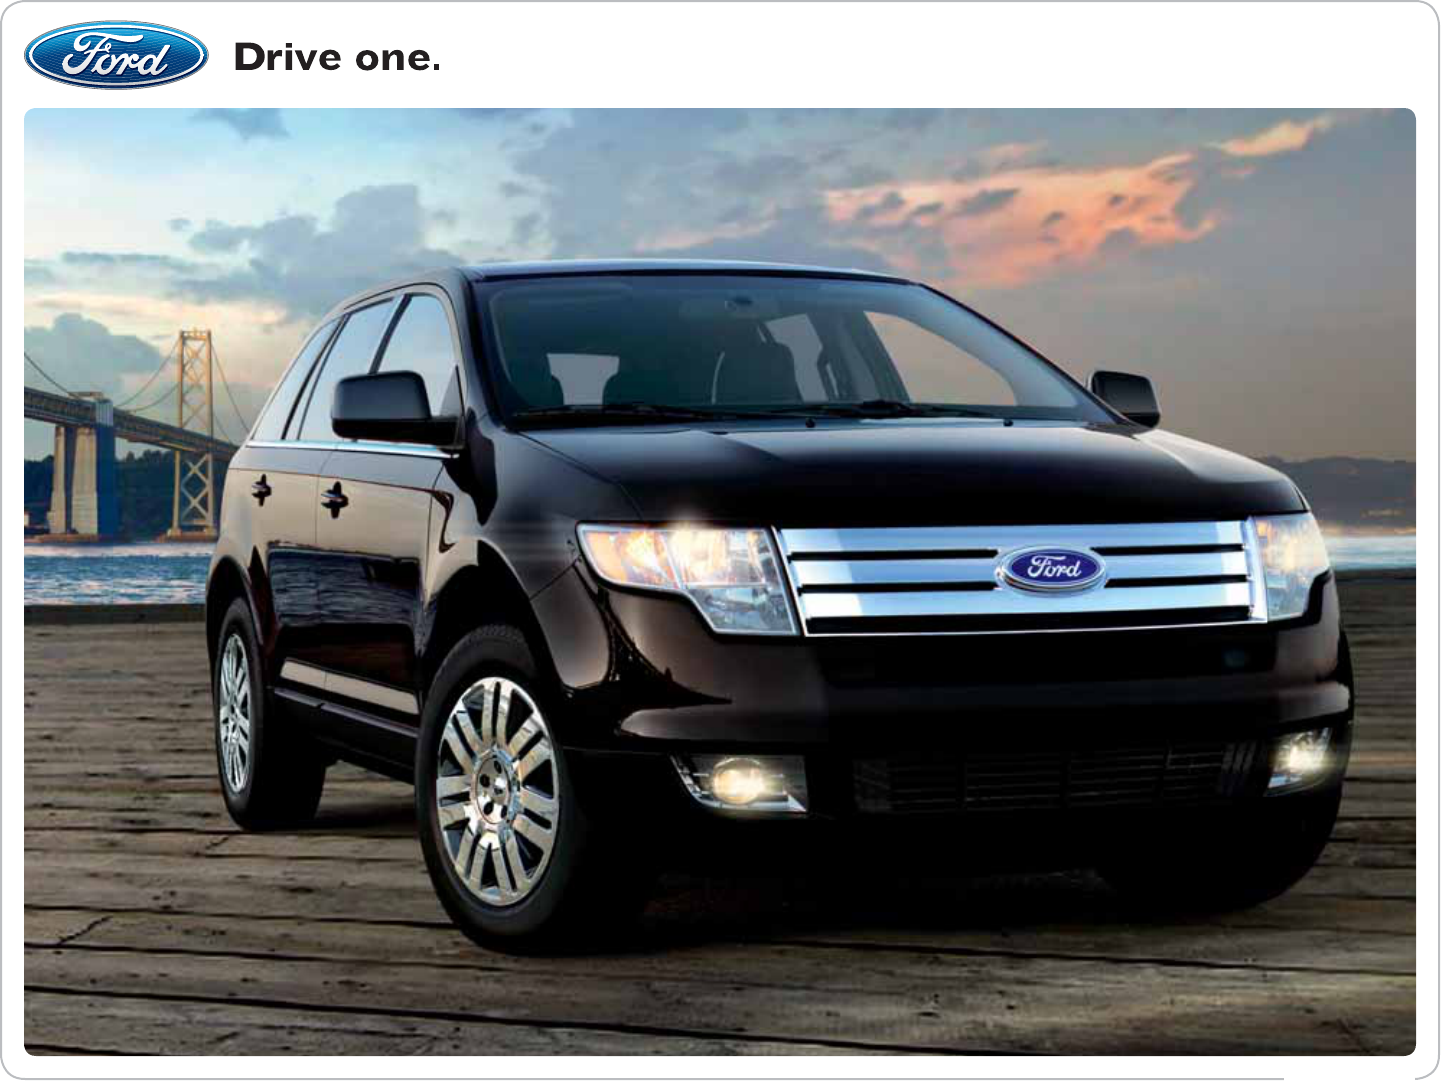 See our other Ford Edge Manuals: 2012 Ford Edge Owners Manual